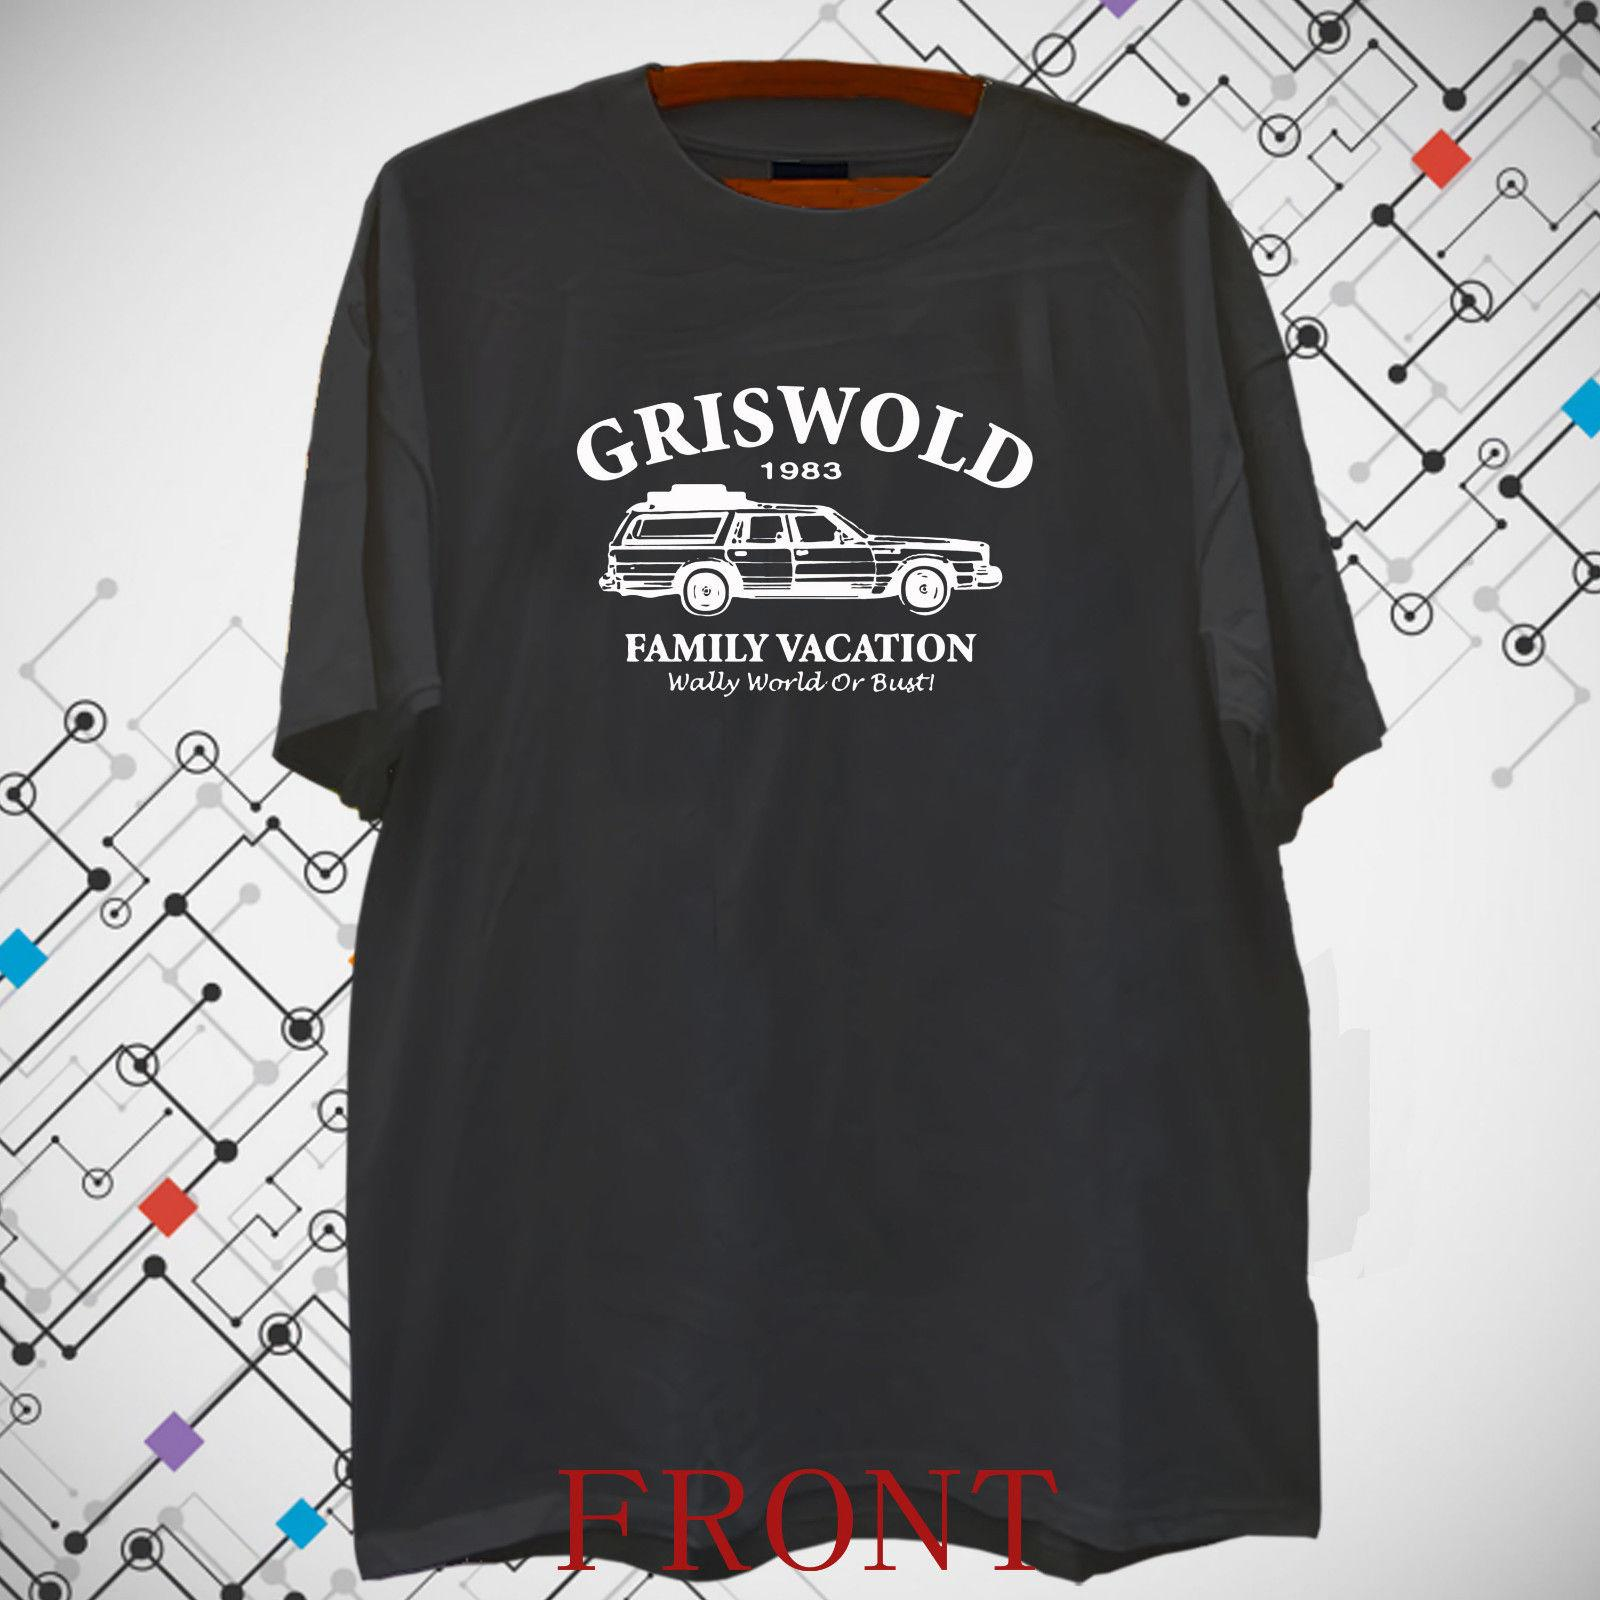 9d2de6b1 Brand New Griswold Family Vacation Wally World Bus Men's Black T shirt Tee S -3XL Funny free shipping Unisex Casual Tshirt top